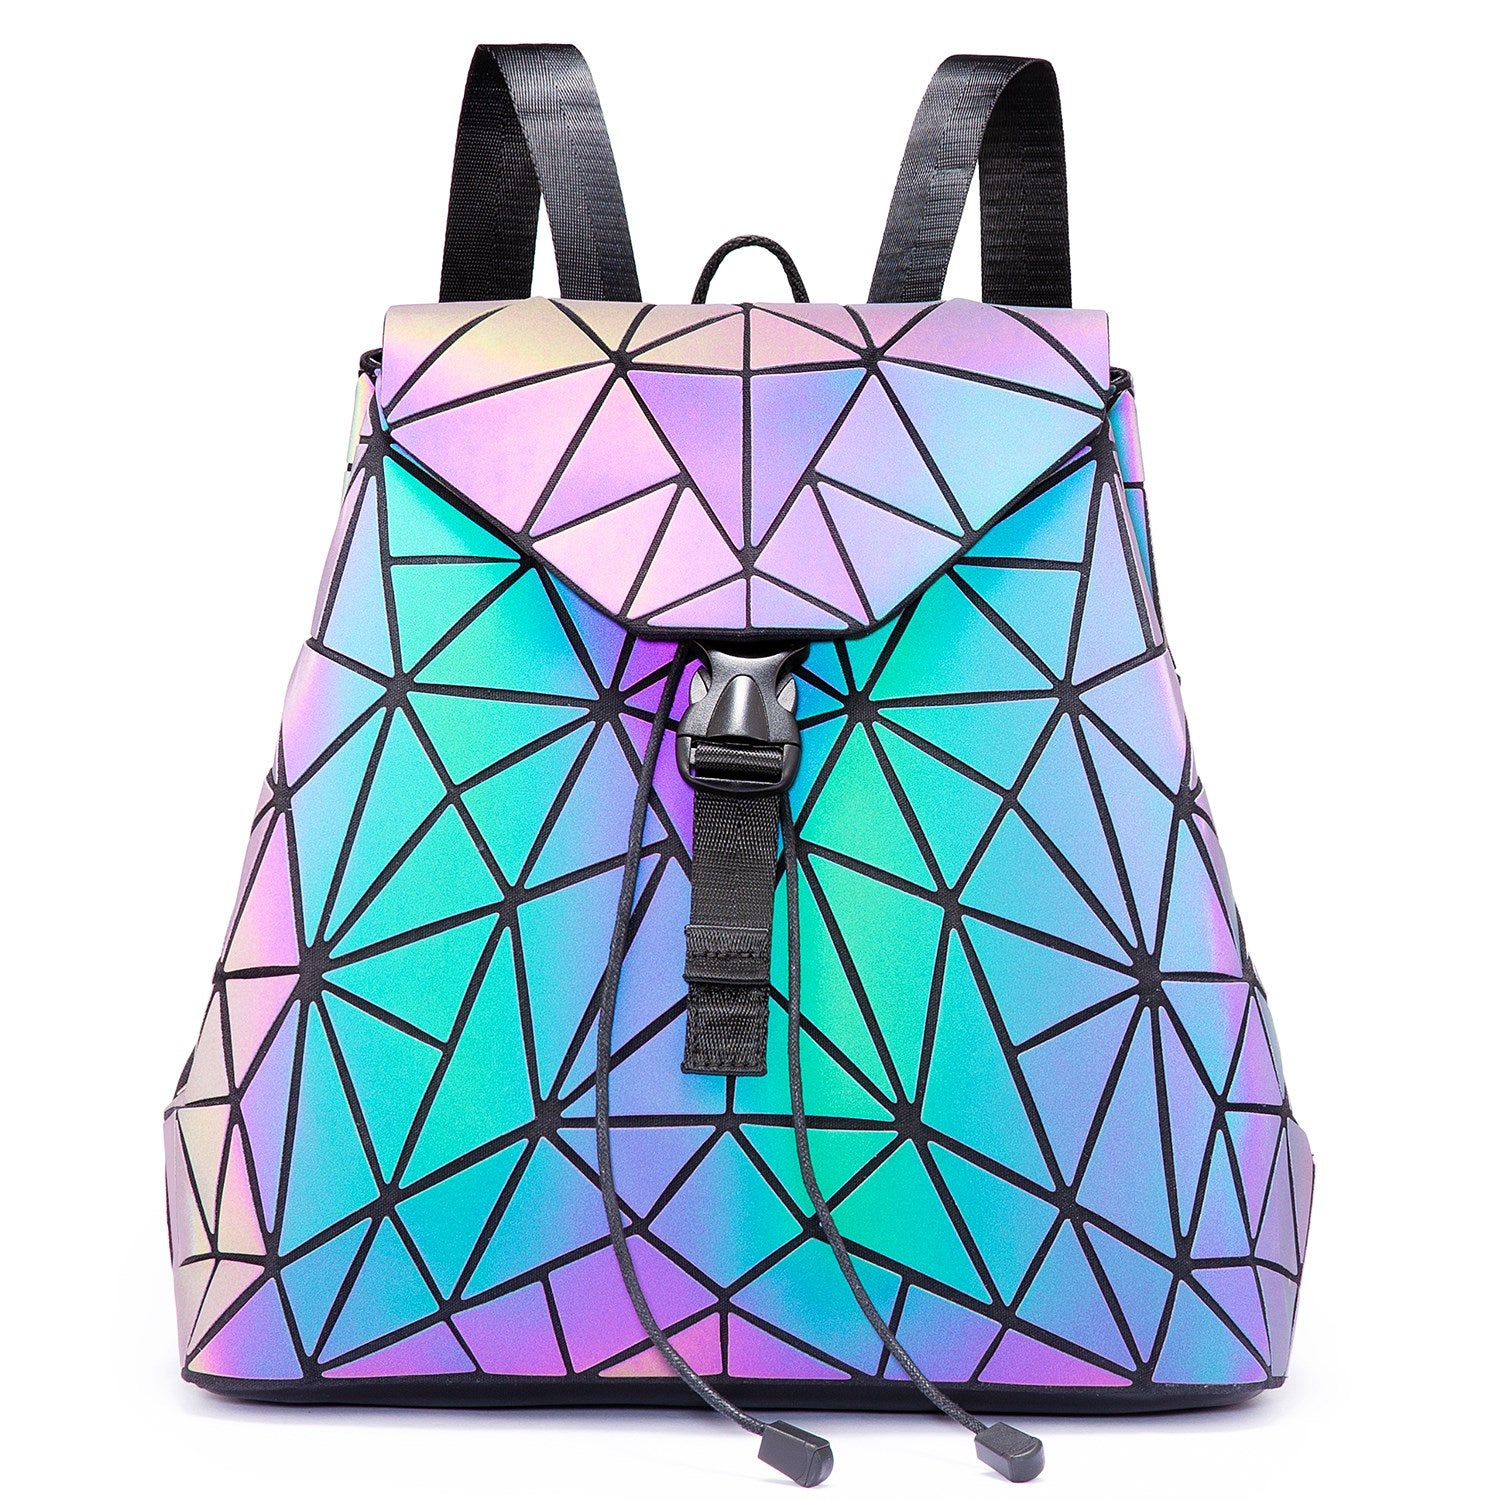 LOVEVOOK Geometric Luminous Holographic Reflective Backpack